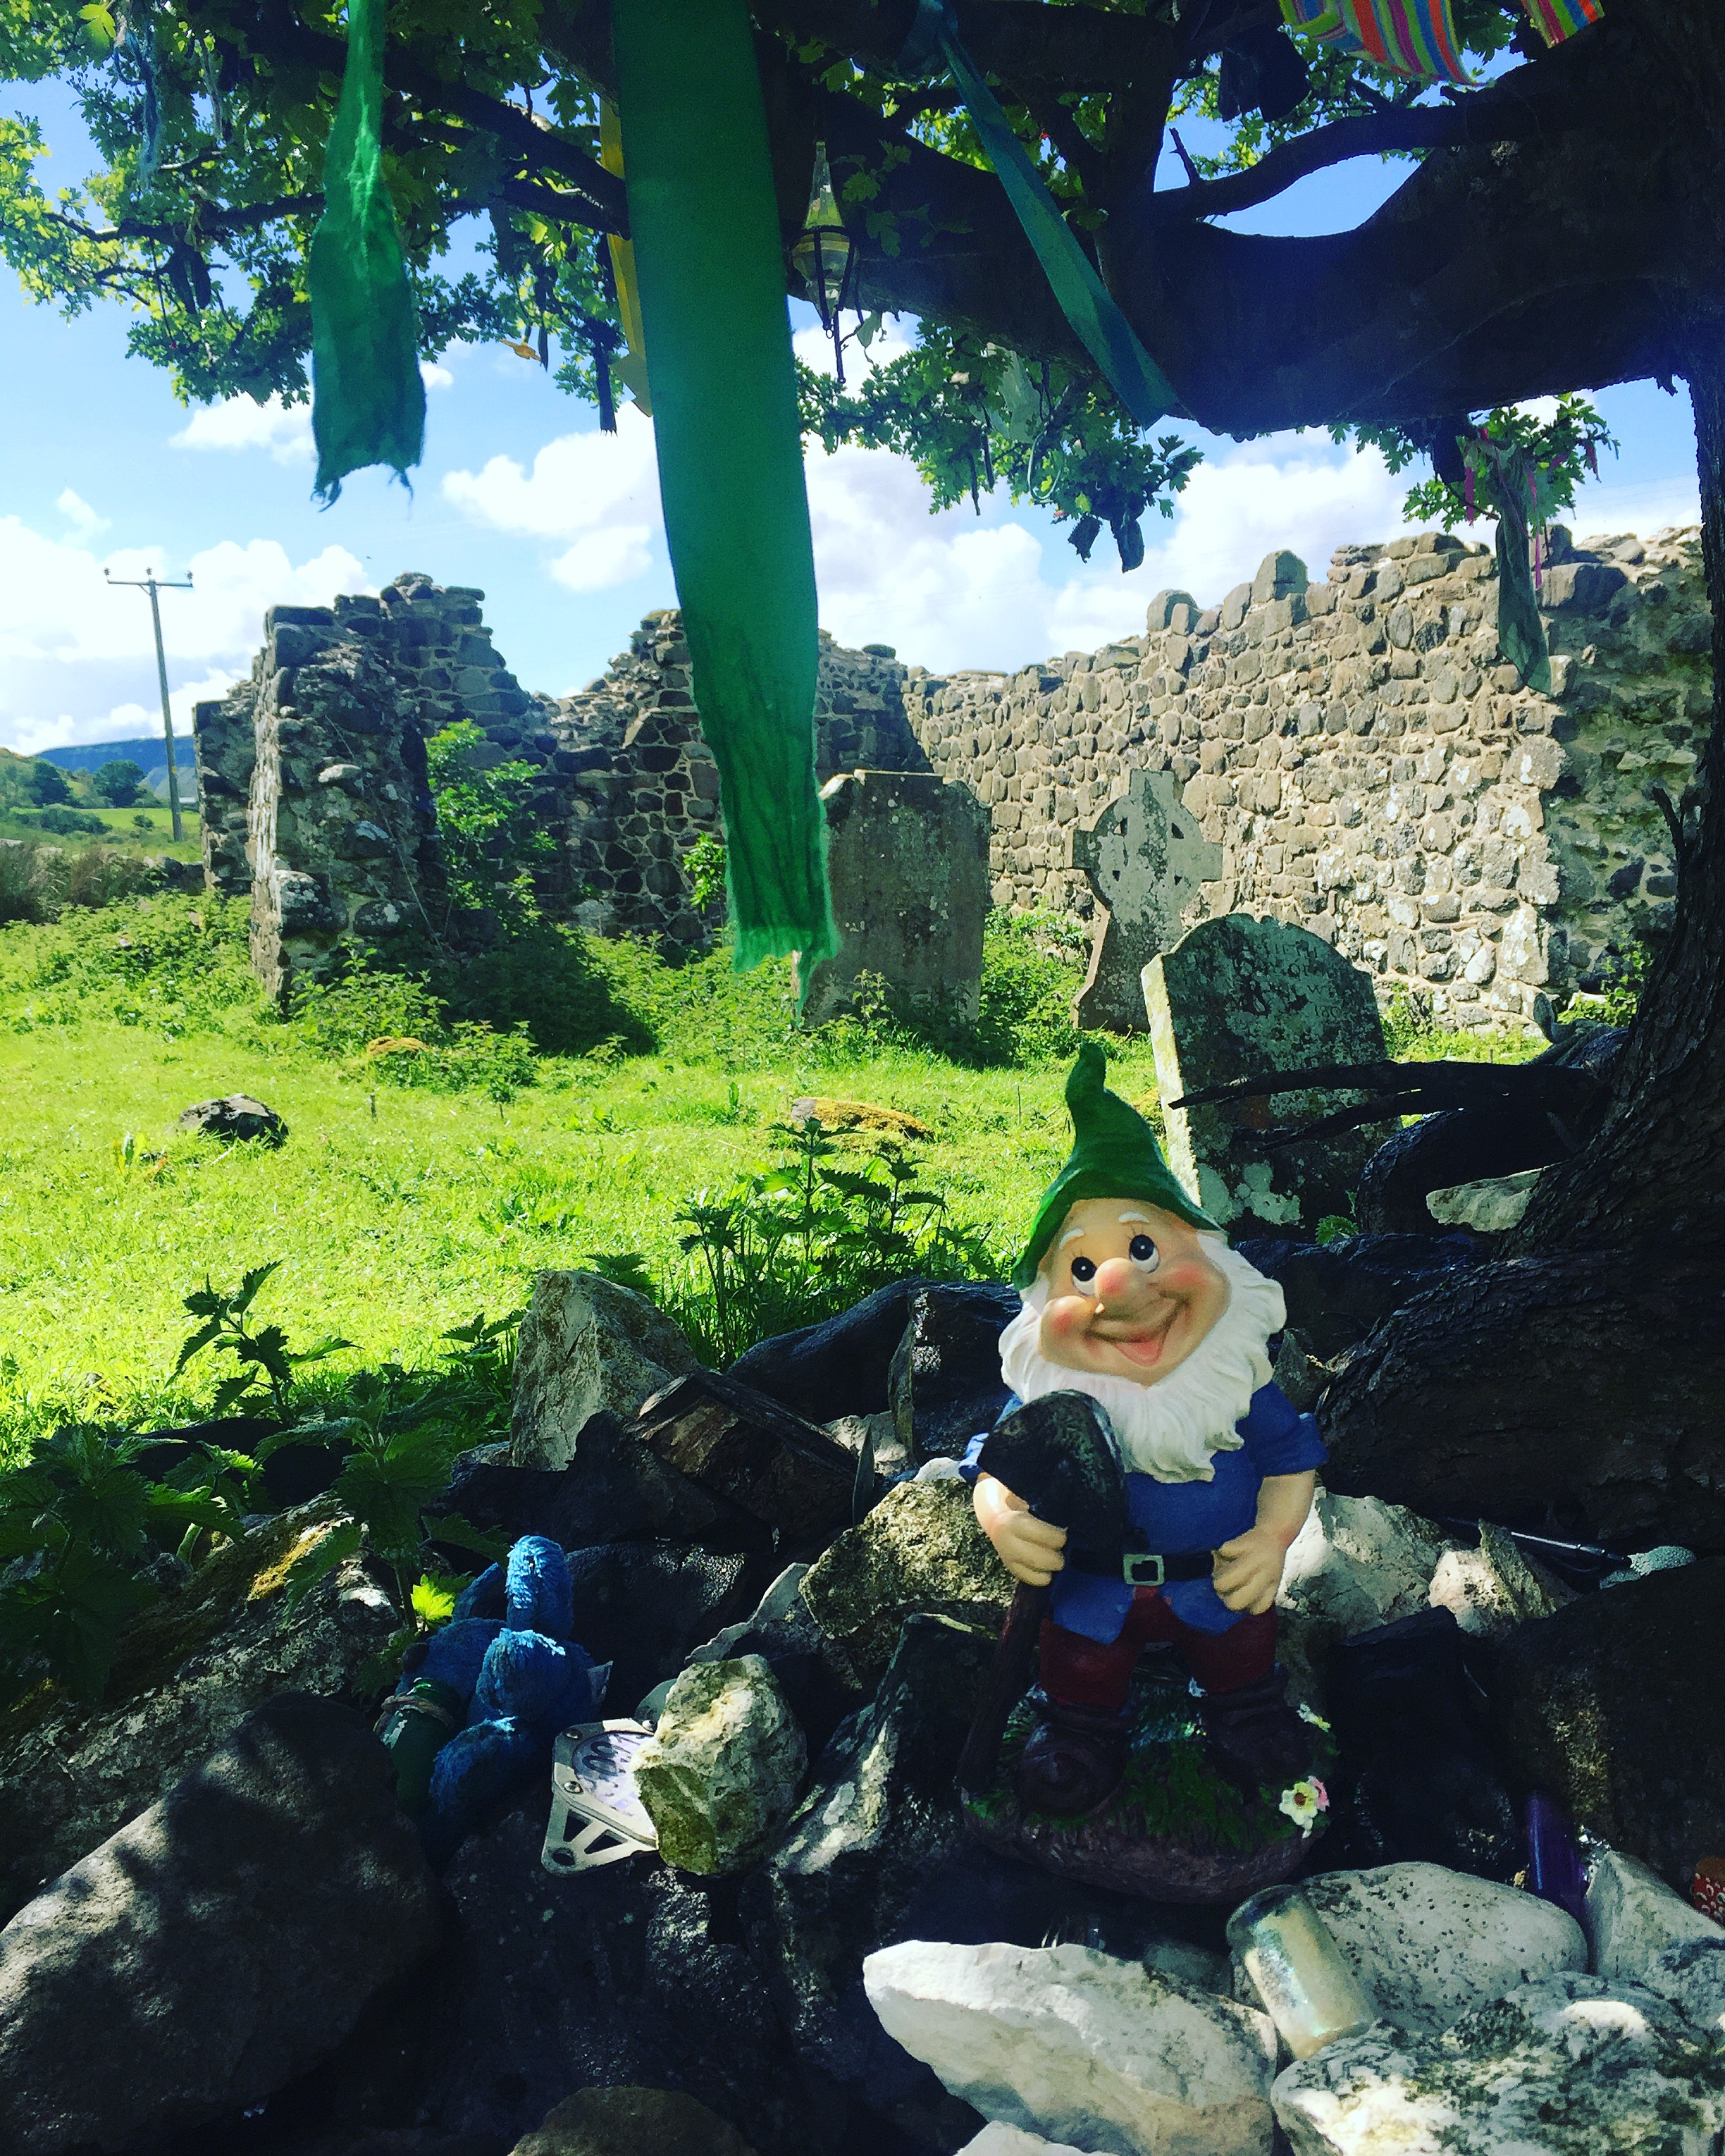 gnome_ardclinis_church_ruins_fairy_tree_thorn_roadtrip_causeway_antrim_coast_ni_explorer_niexplorer_northern_ireland_blog.jpg